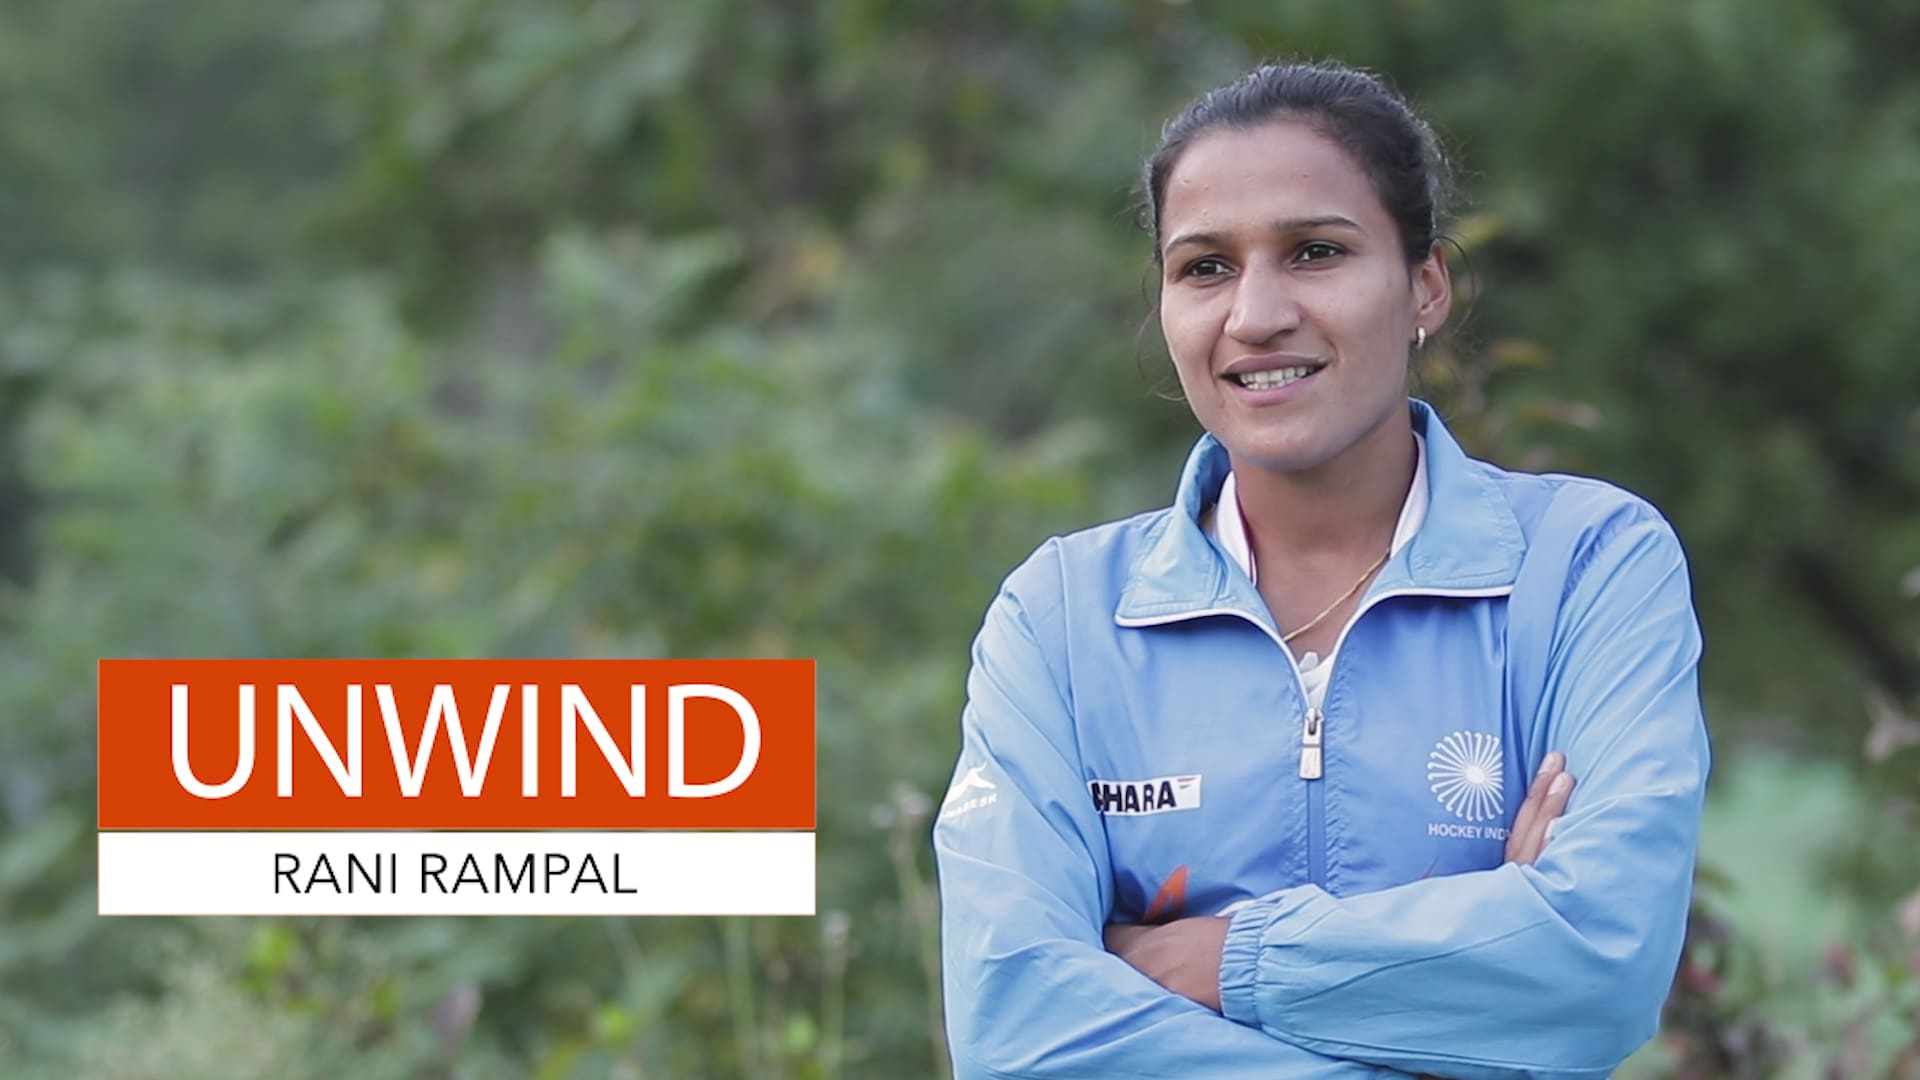 Watch: Indian women's hockey team captain Rani Rampal on growing up in Haryana, Asia Cup victory and more